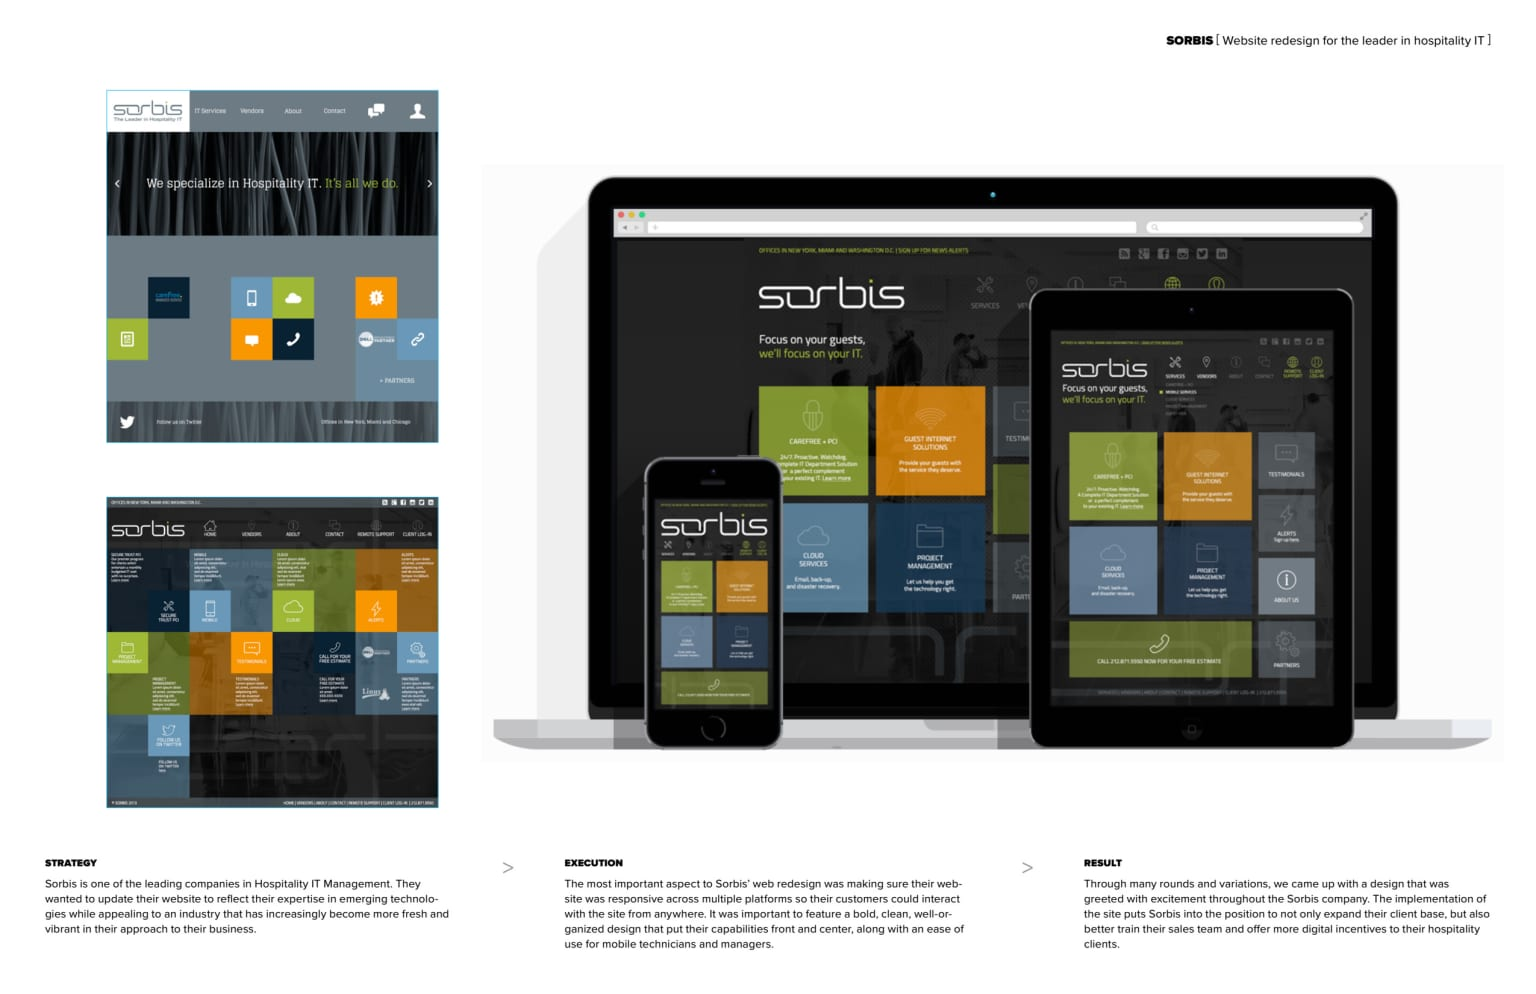 Sorbis Website Redesign